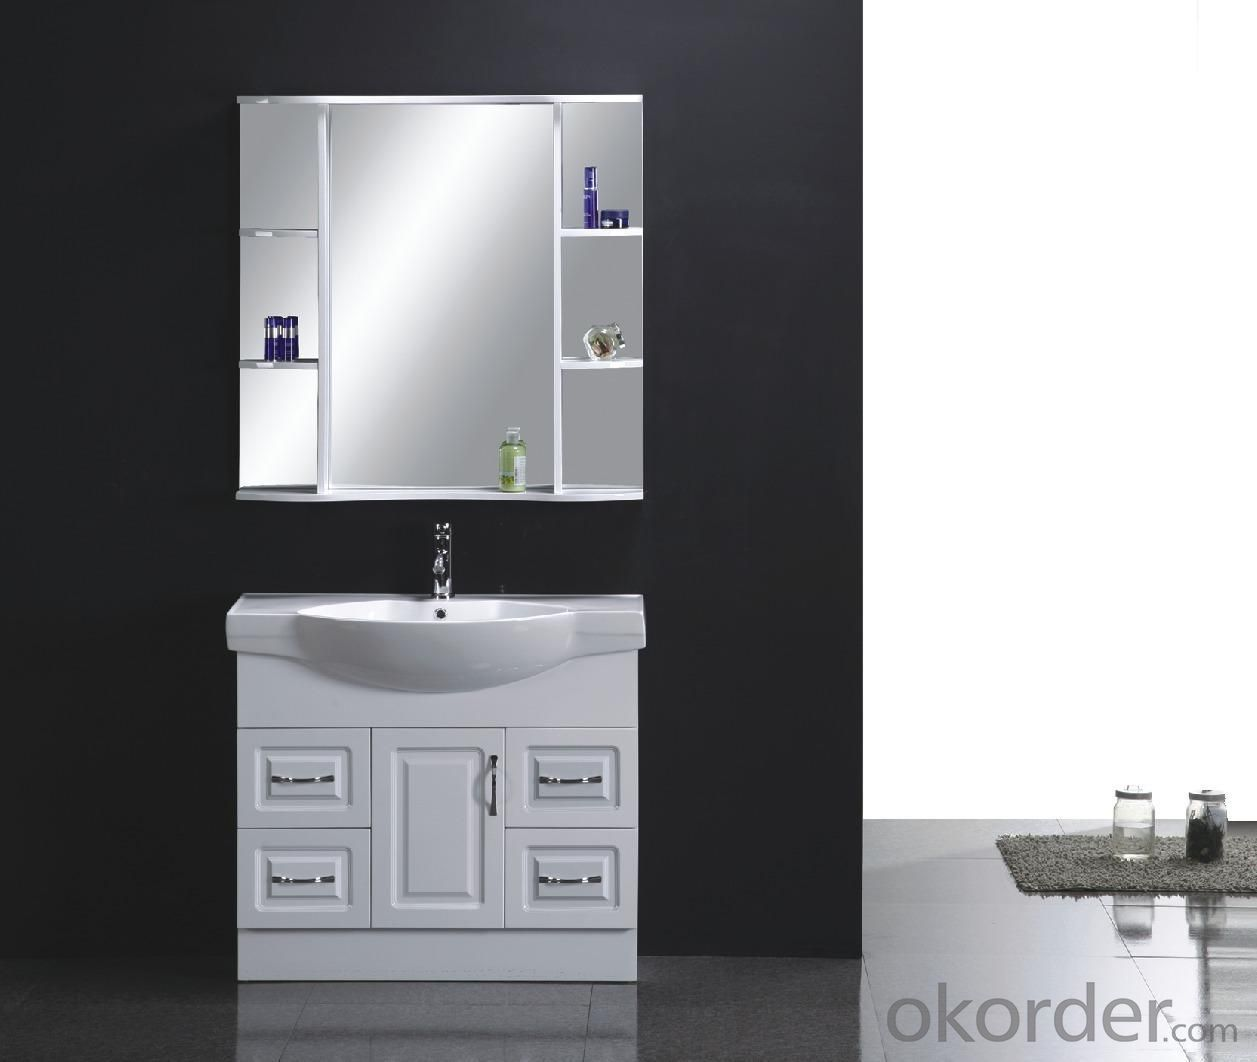 Mdf Kitchen Cabinets Price: Buy BATHROOM FURNITURE/MDF Cabinet Price,Size,Weight,Model